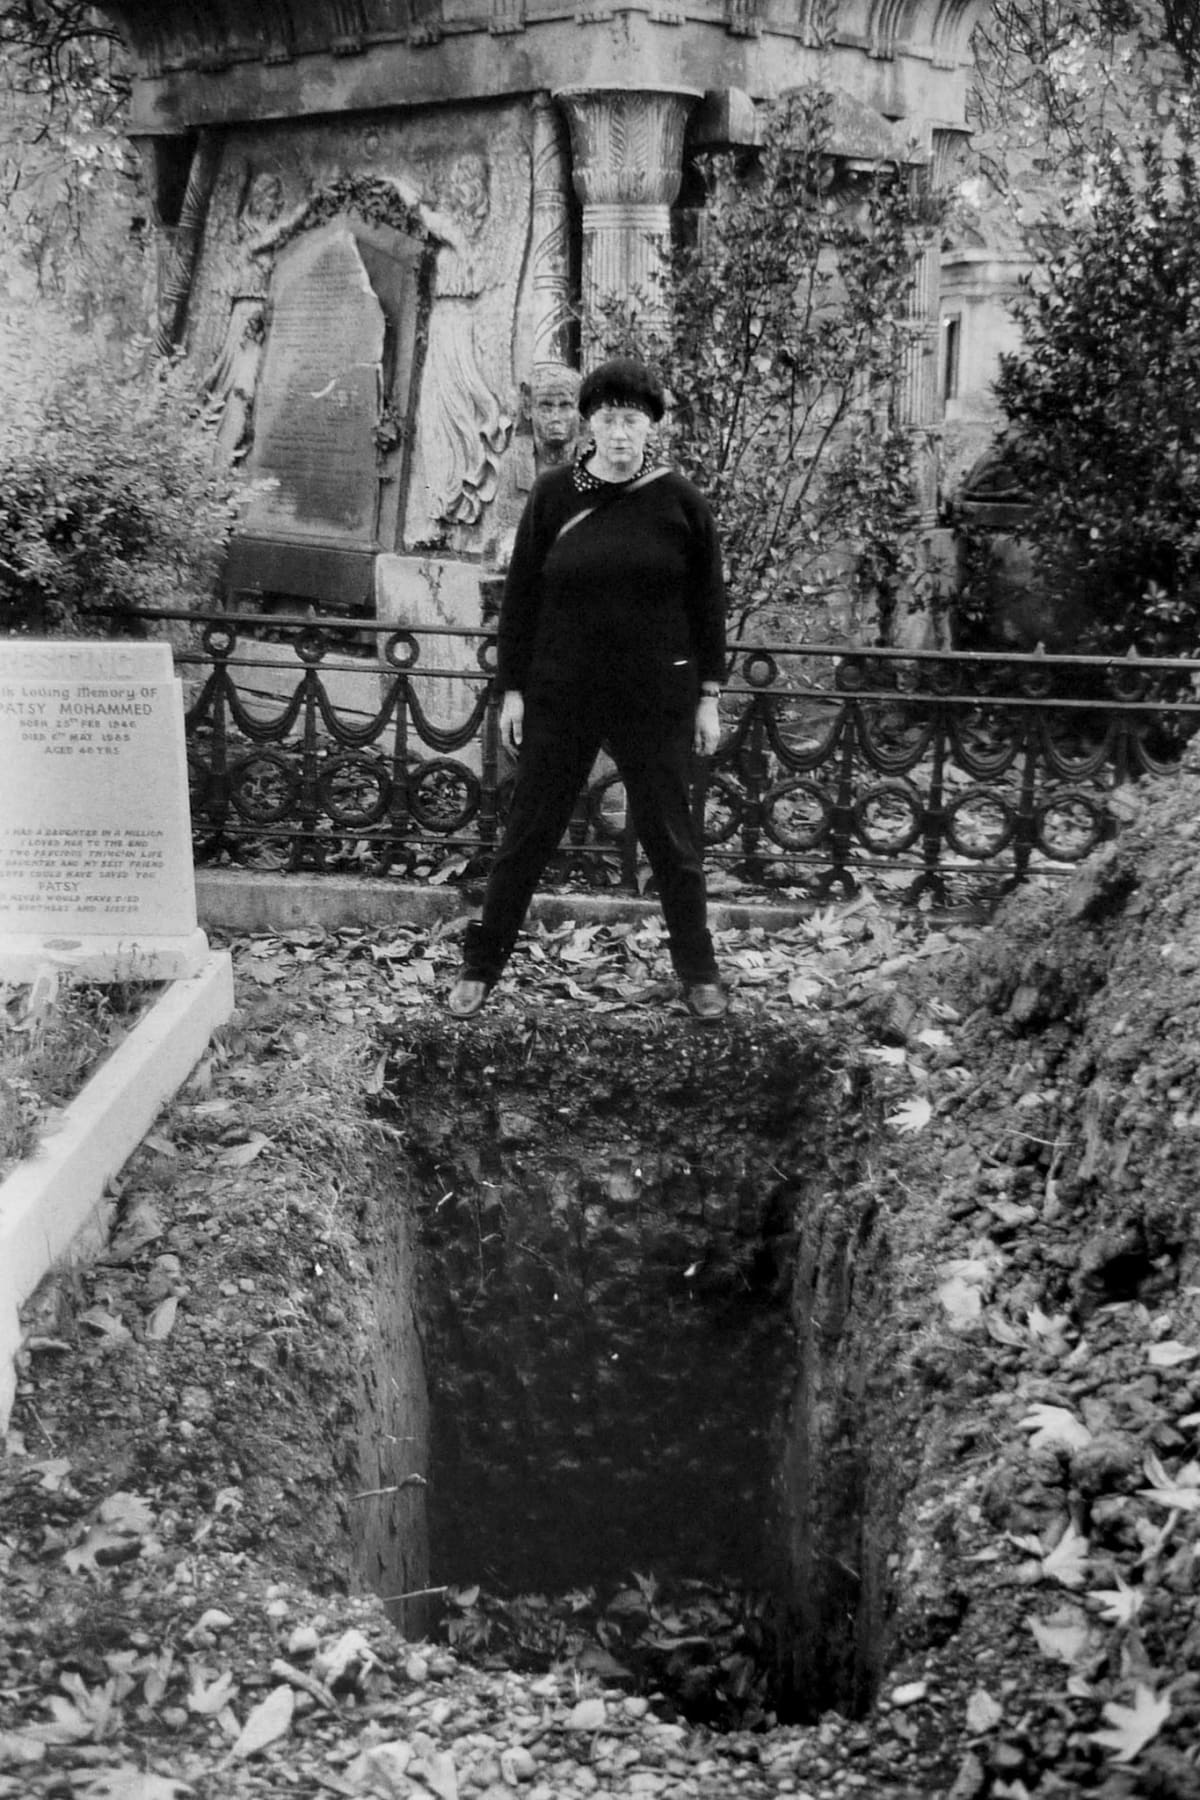 Jo SPENCE The Final Project [Graveyard 1], 1991 - 1992 Positive digital print from 35mm black and white negative 57 x 37 cm Edition of 2 plus 1 Estate Copy